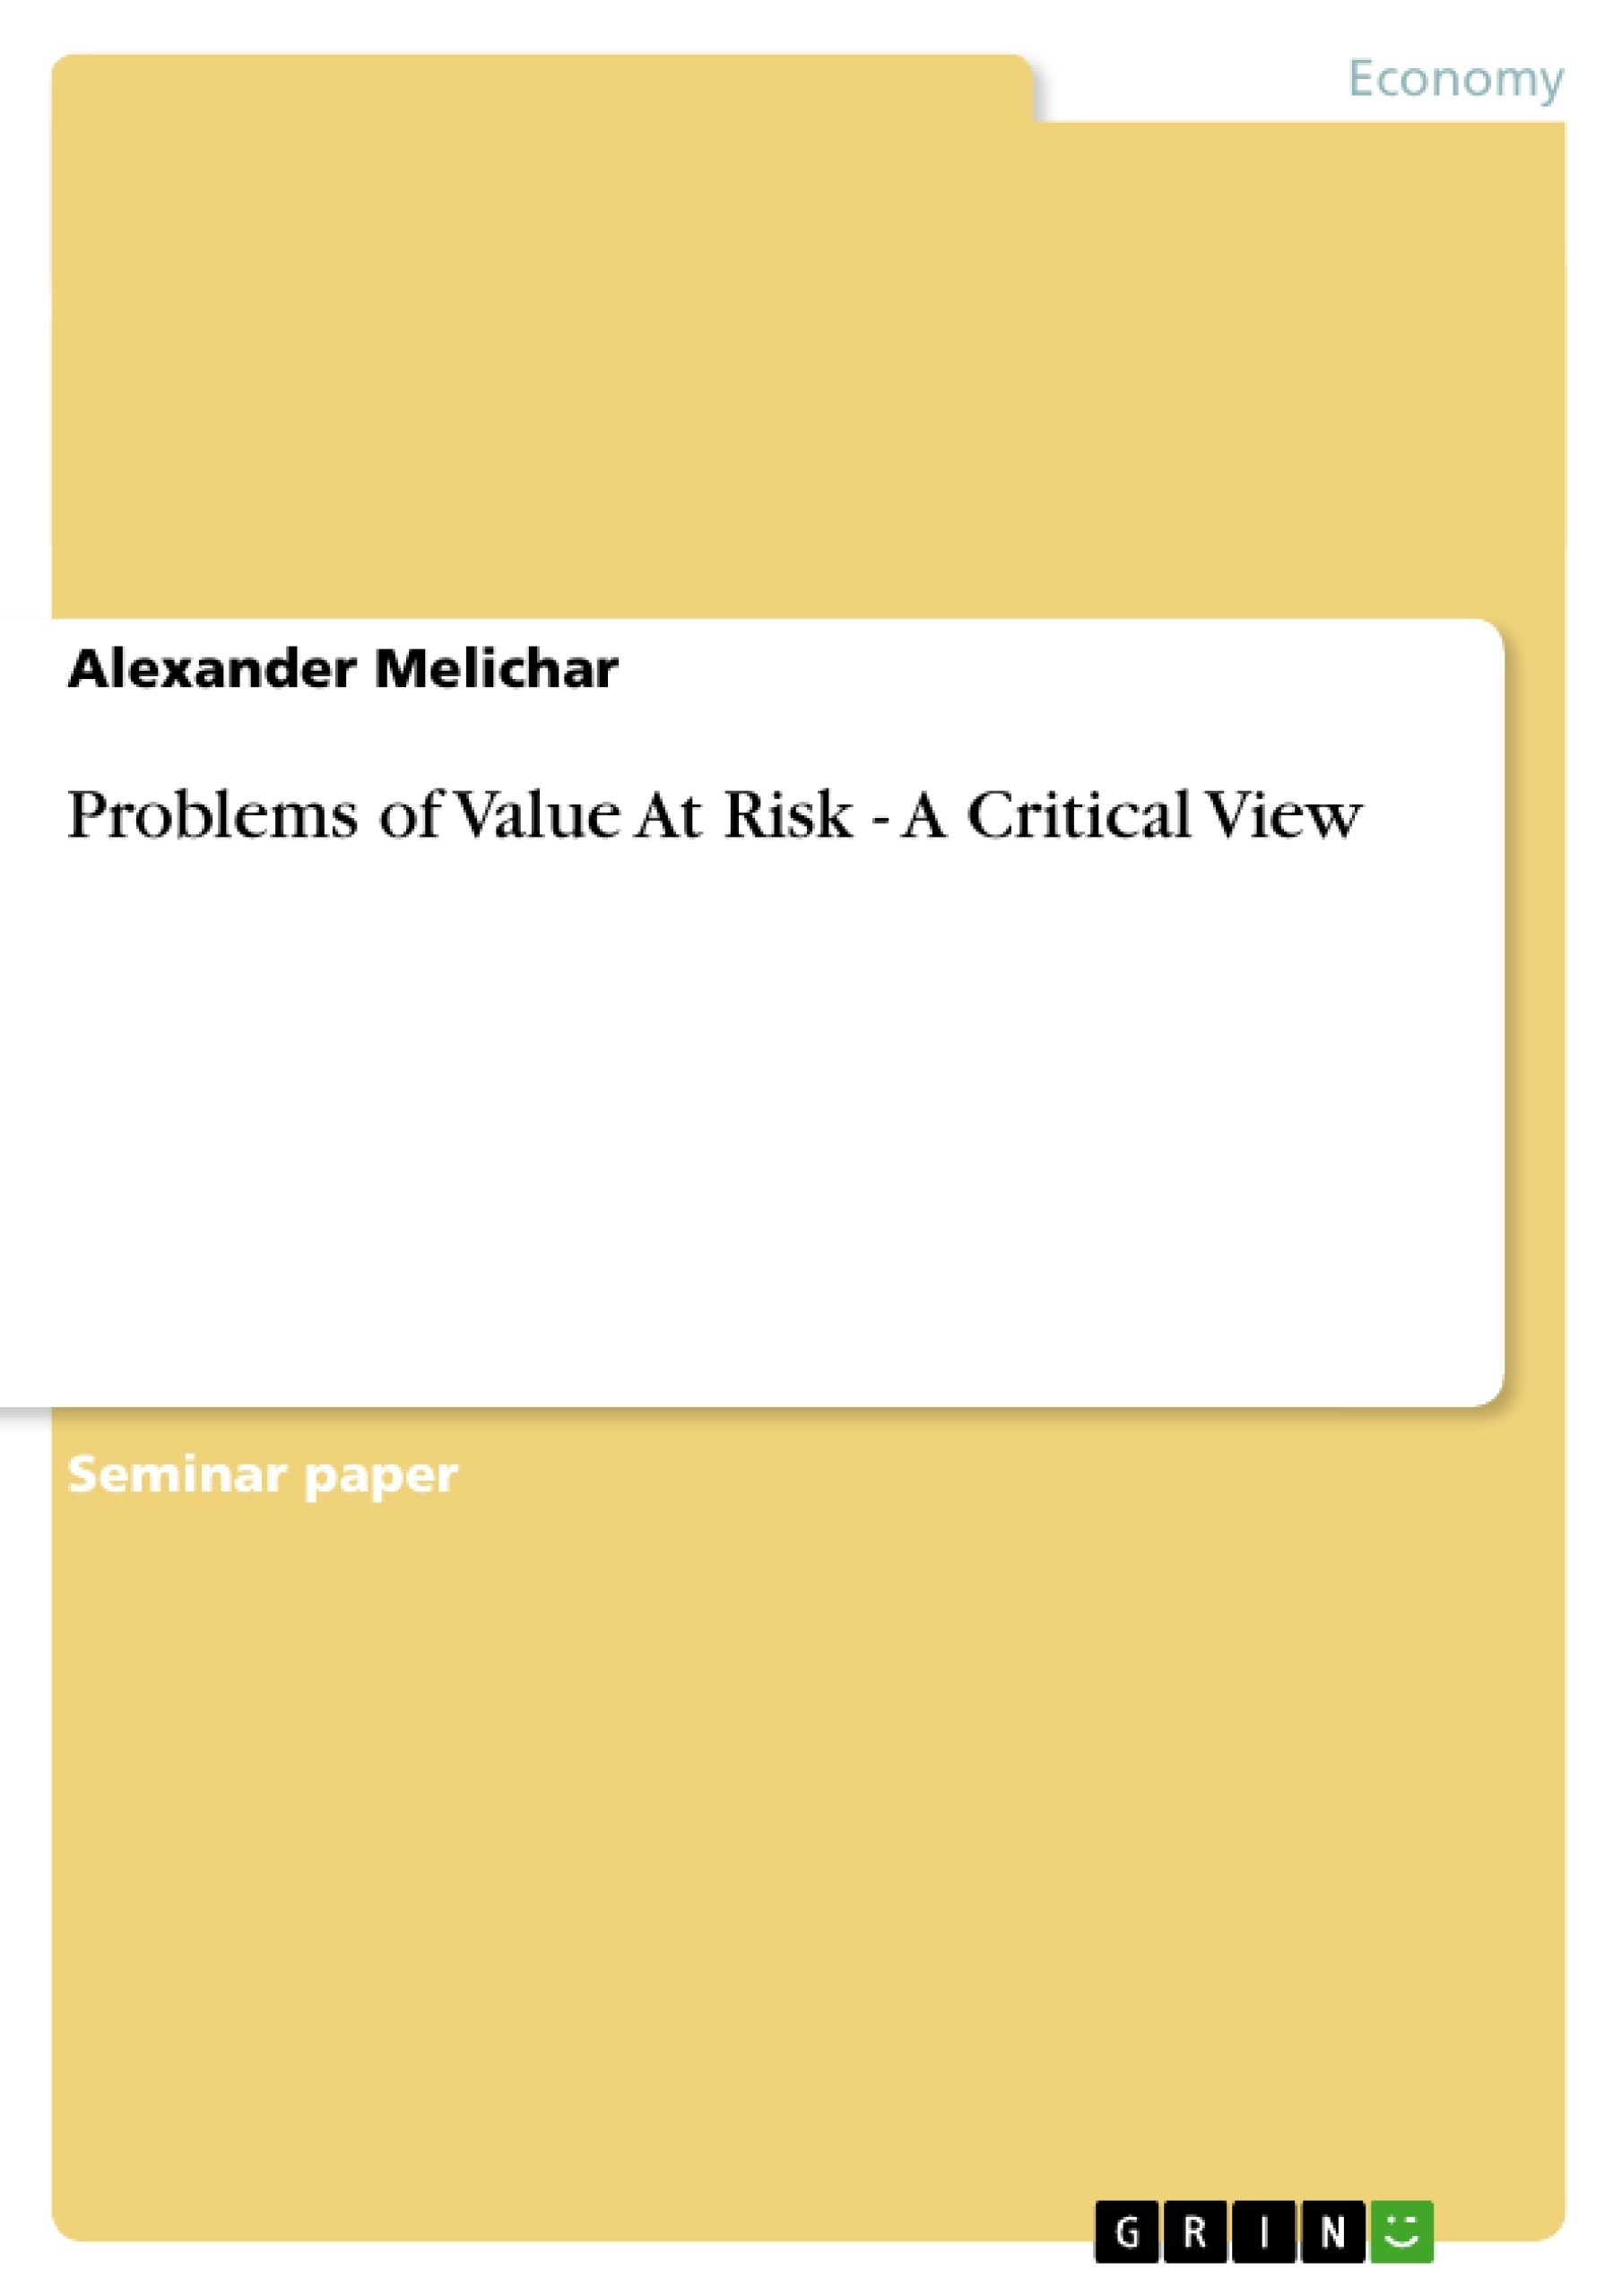 Title: Problems of Value At Risk - A Critical View